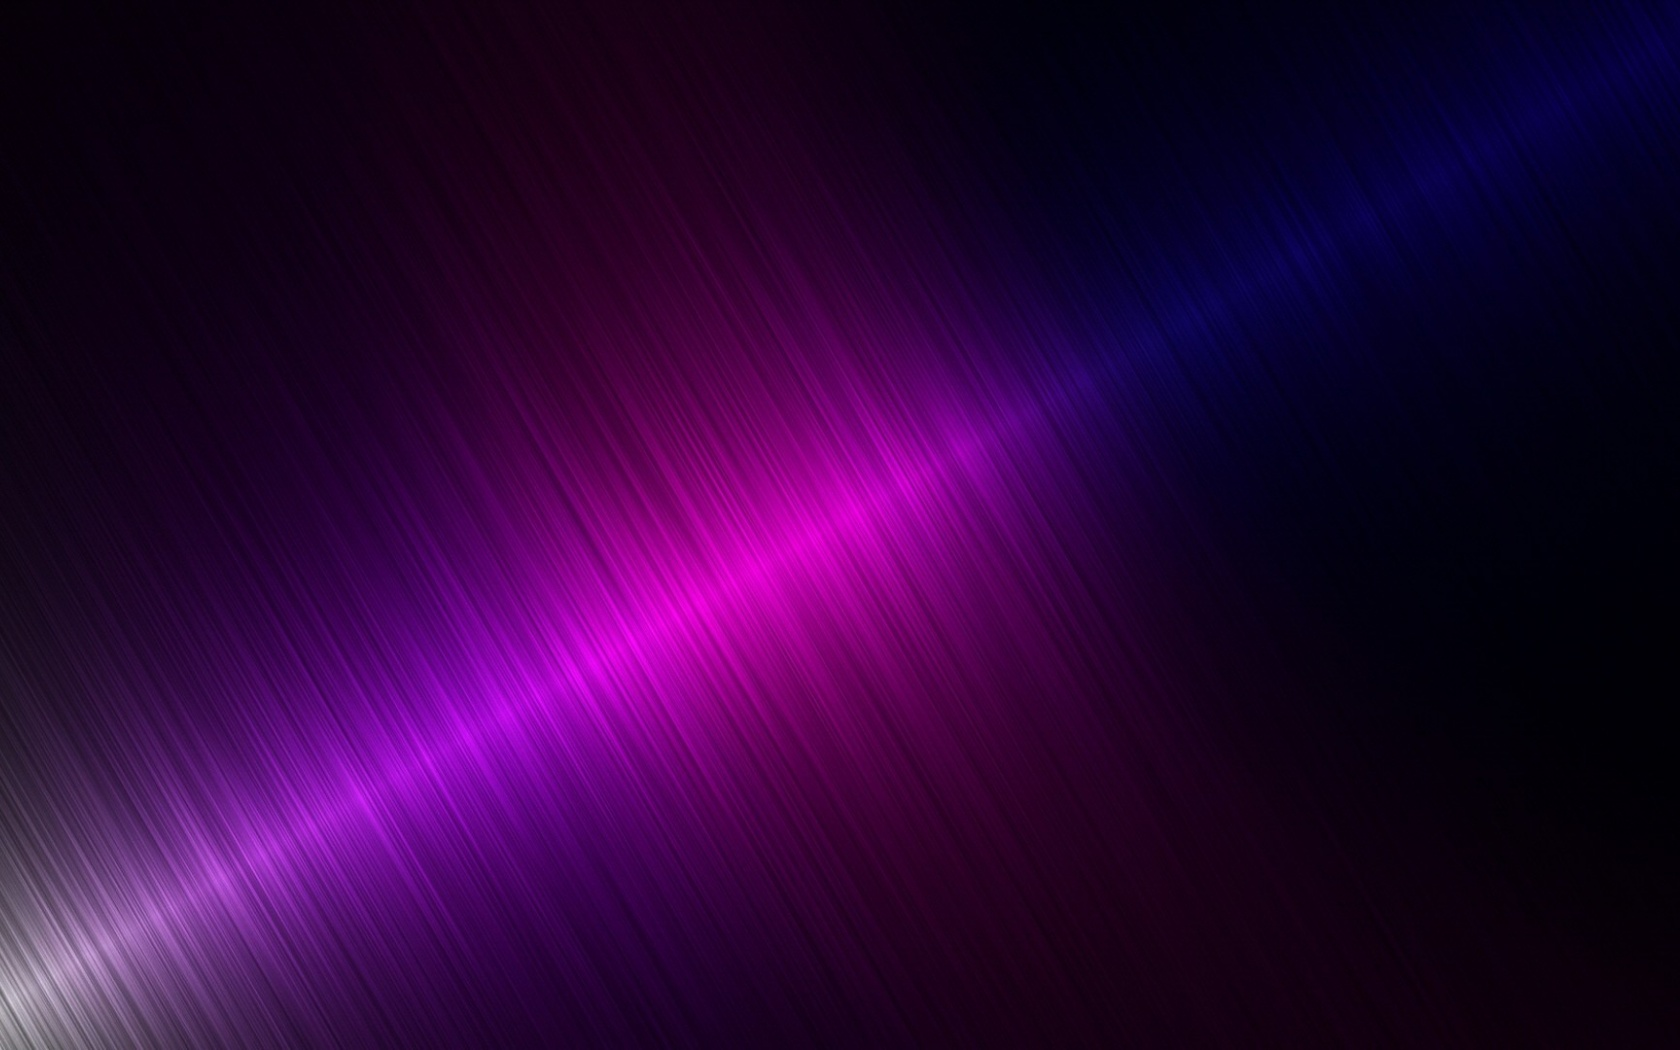 1680x1050 Brushed Purple desktop PC and Mac wallpaper 1680x1050